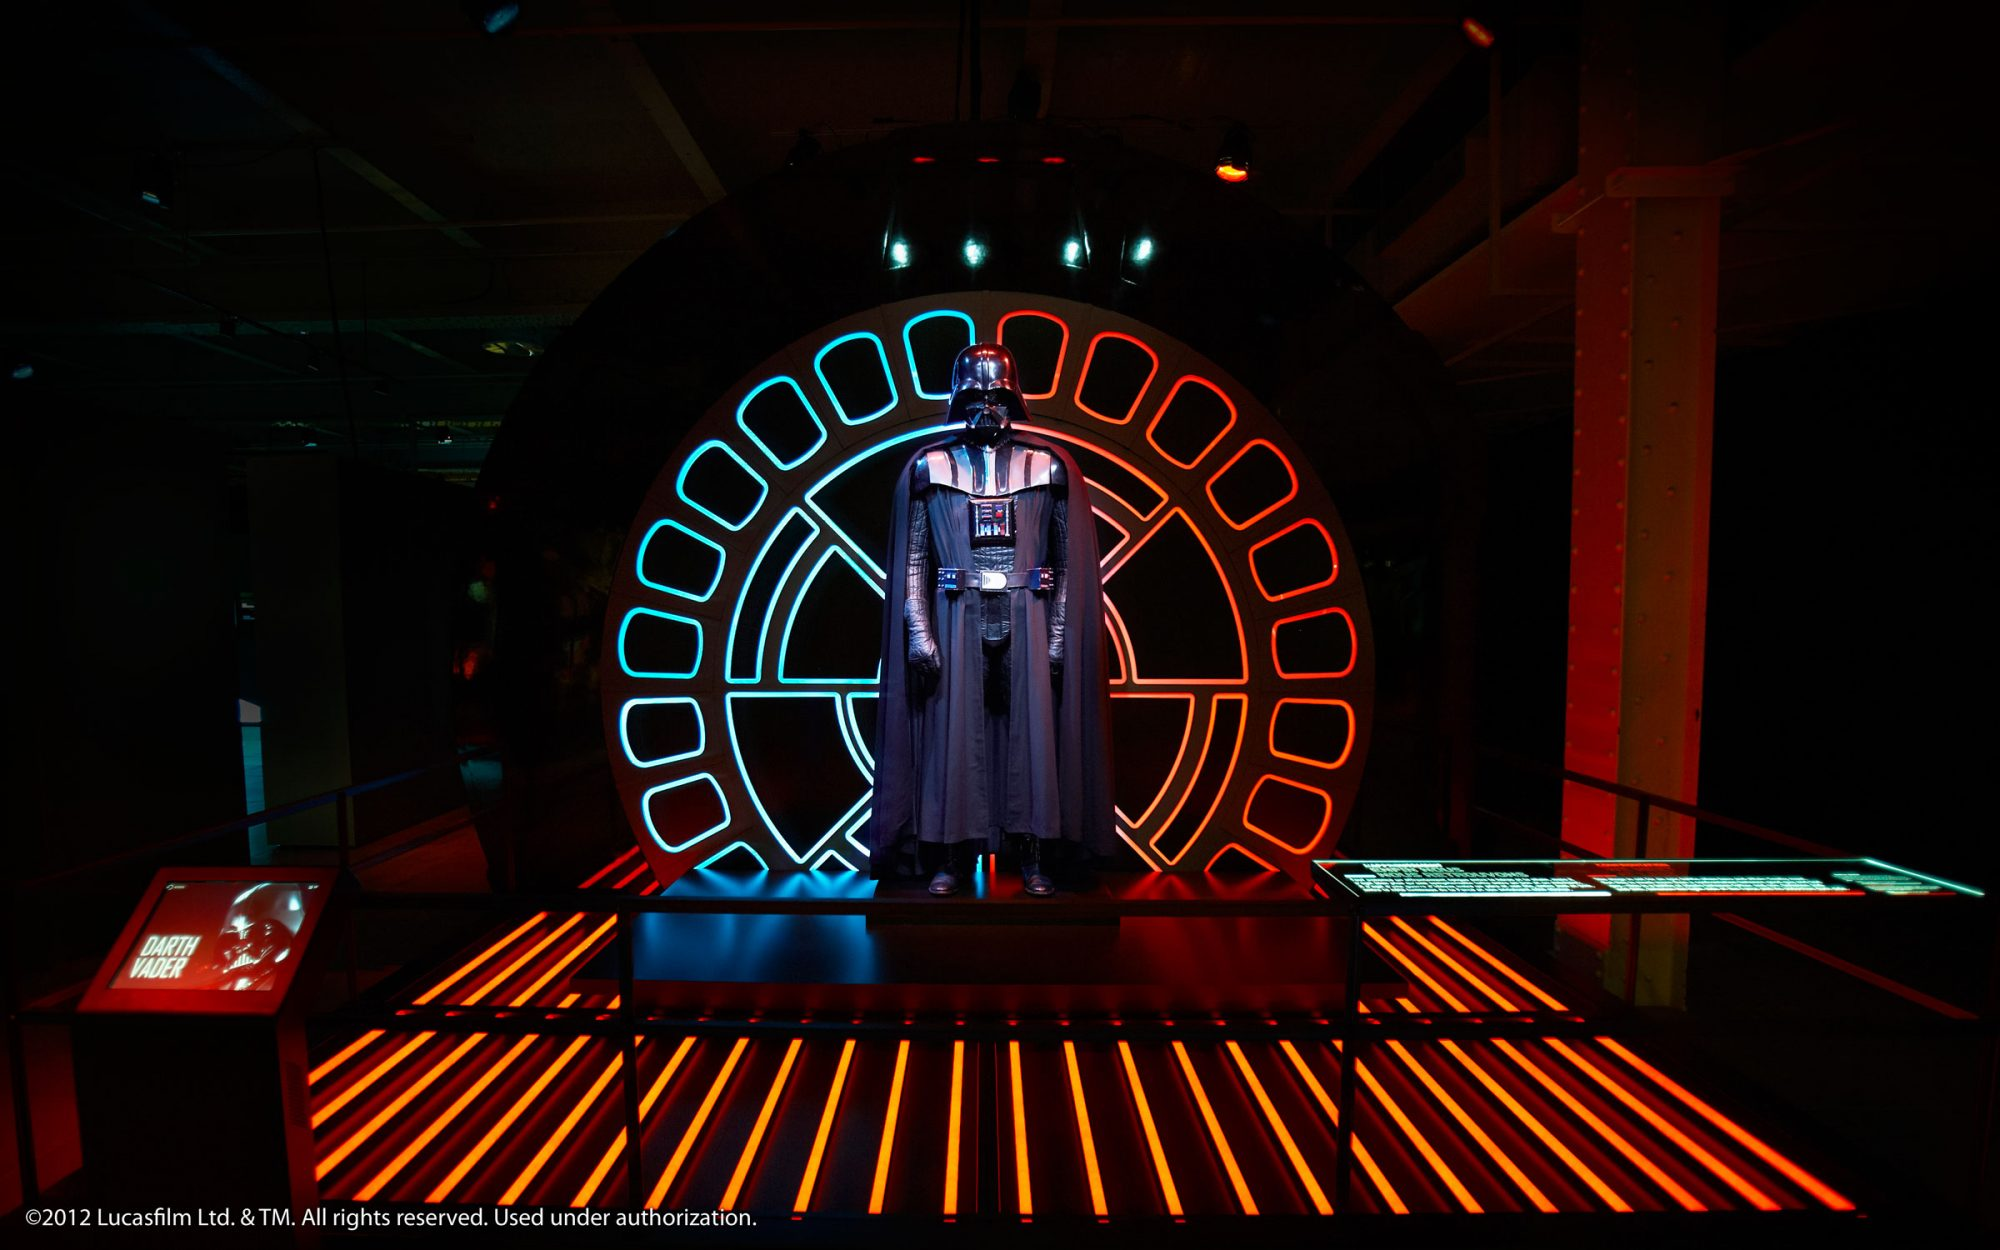 Interactive Exhibition Has Hundreds of Original Star Wars Costumes and Film Props